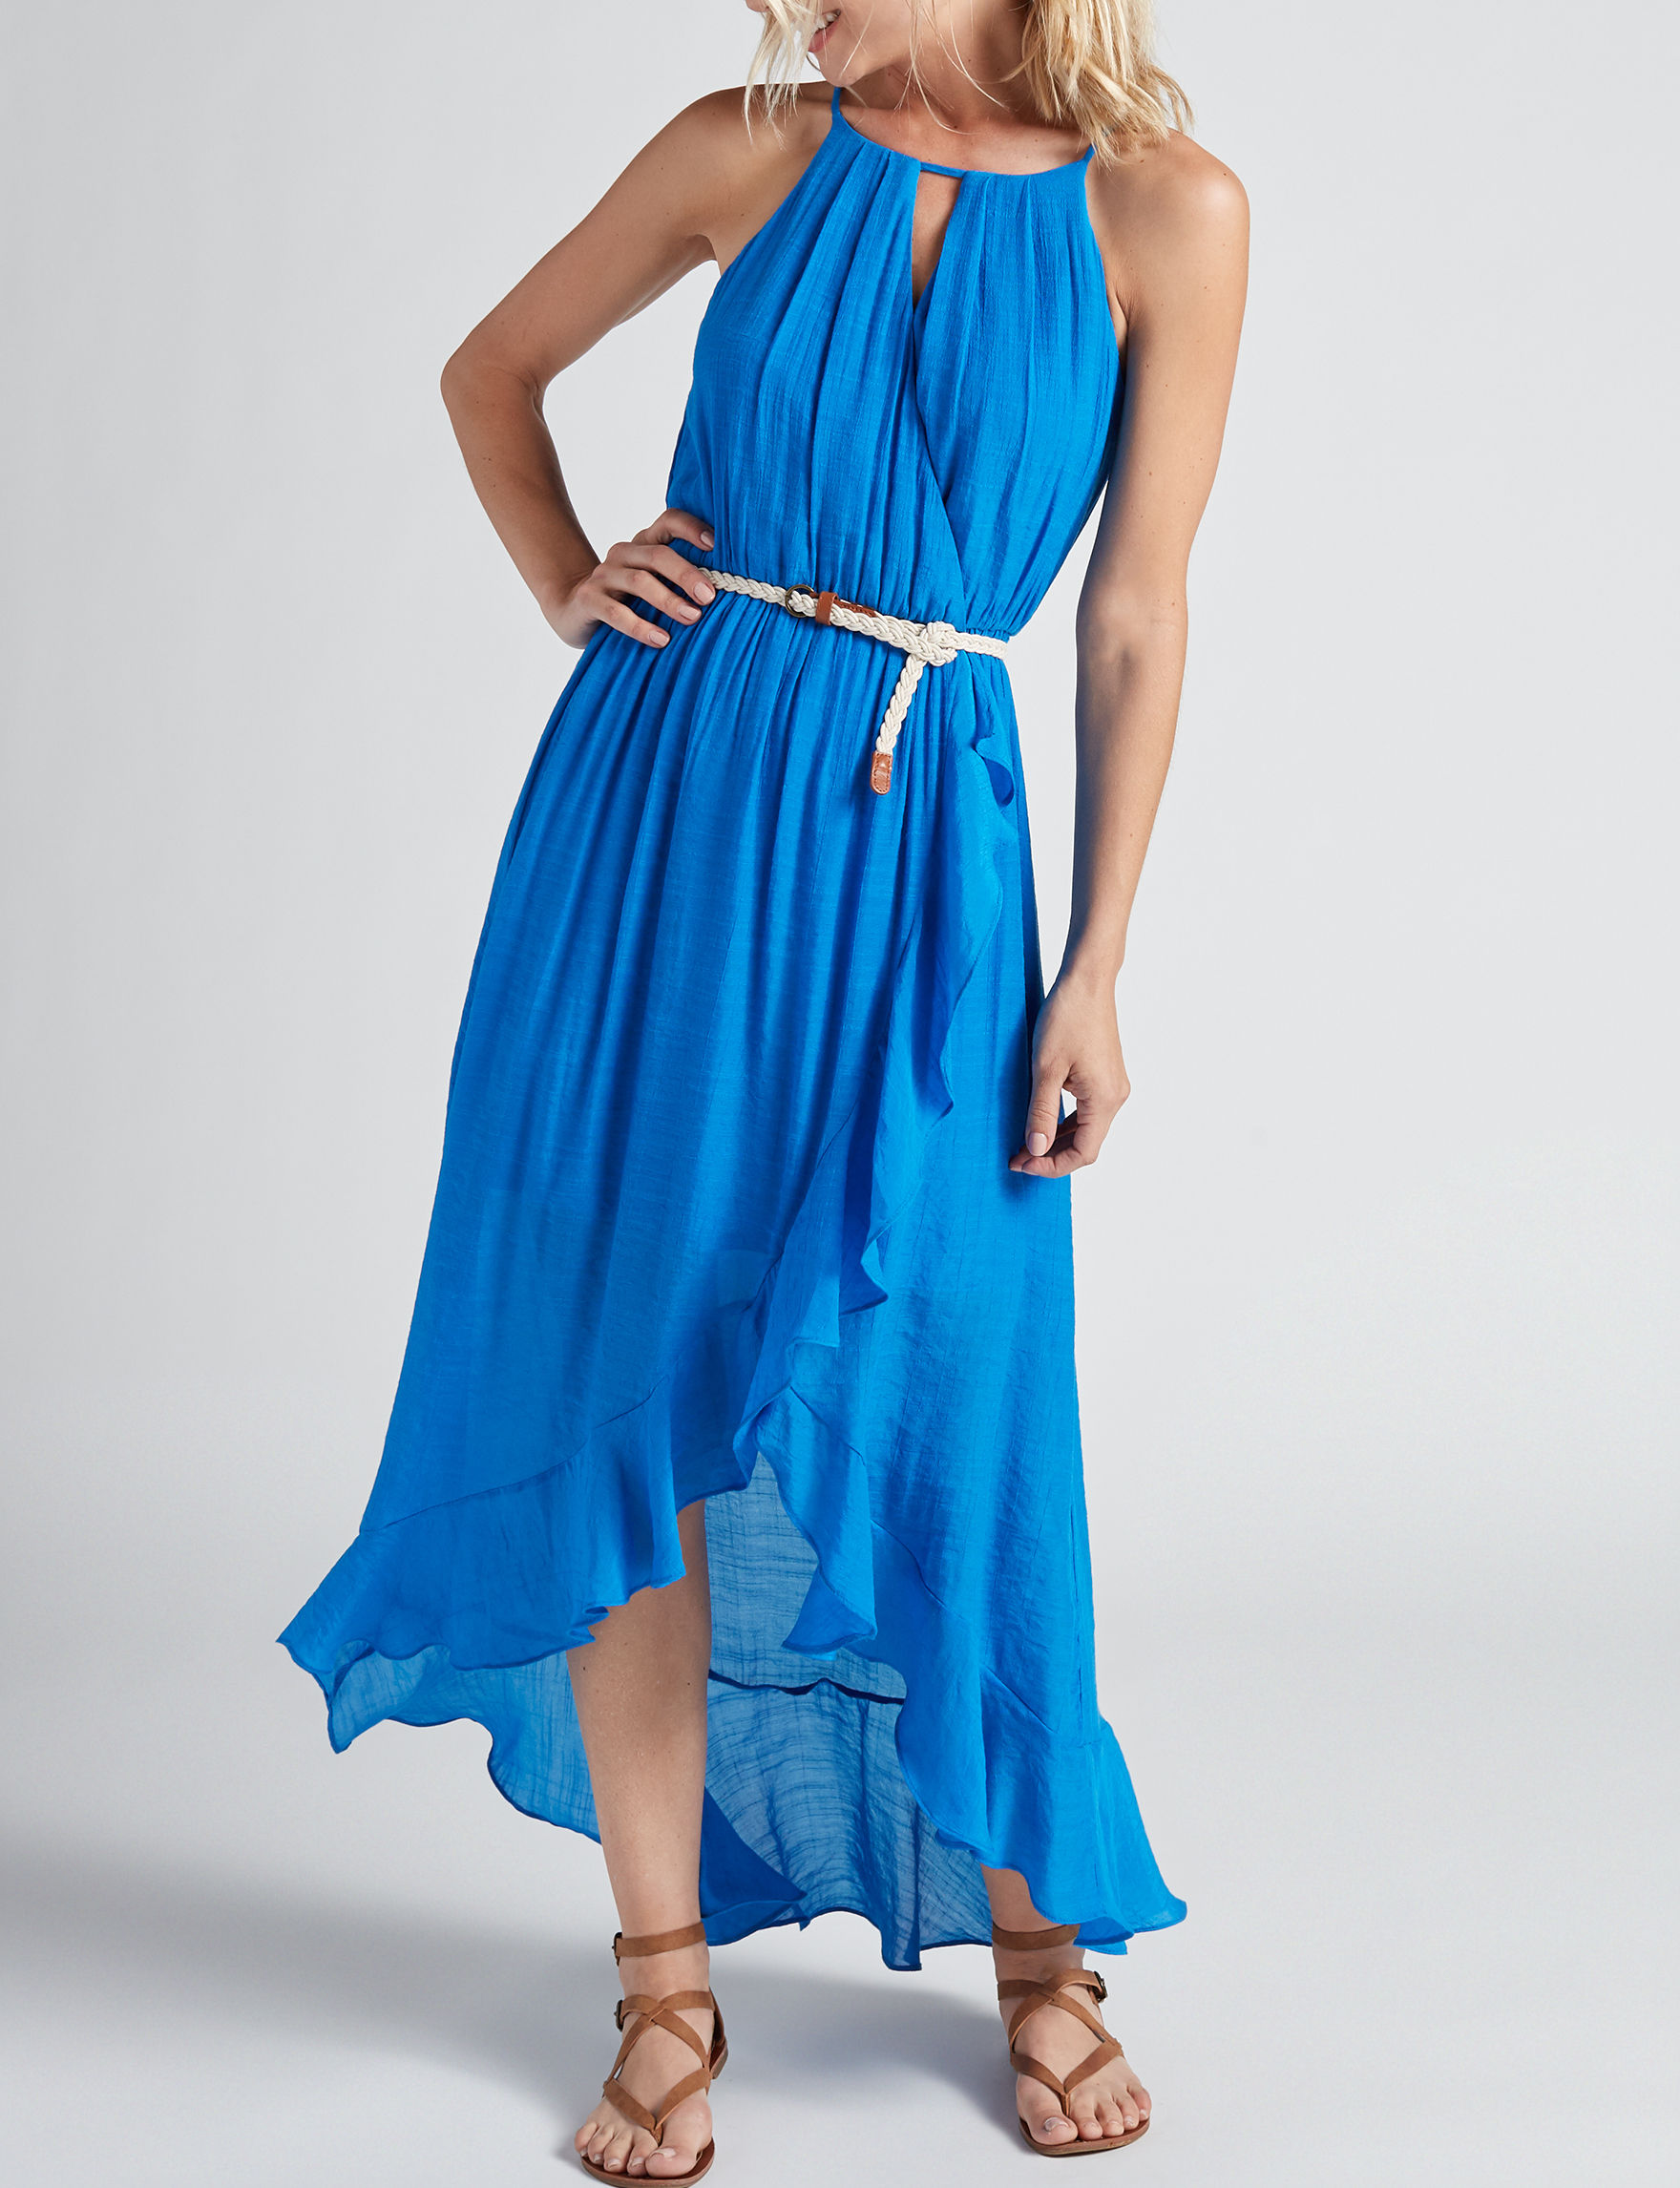 A. Byer Royal Blue Everyday & Casual Sundresses